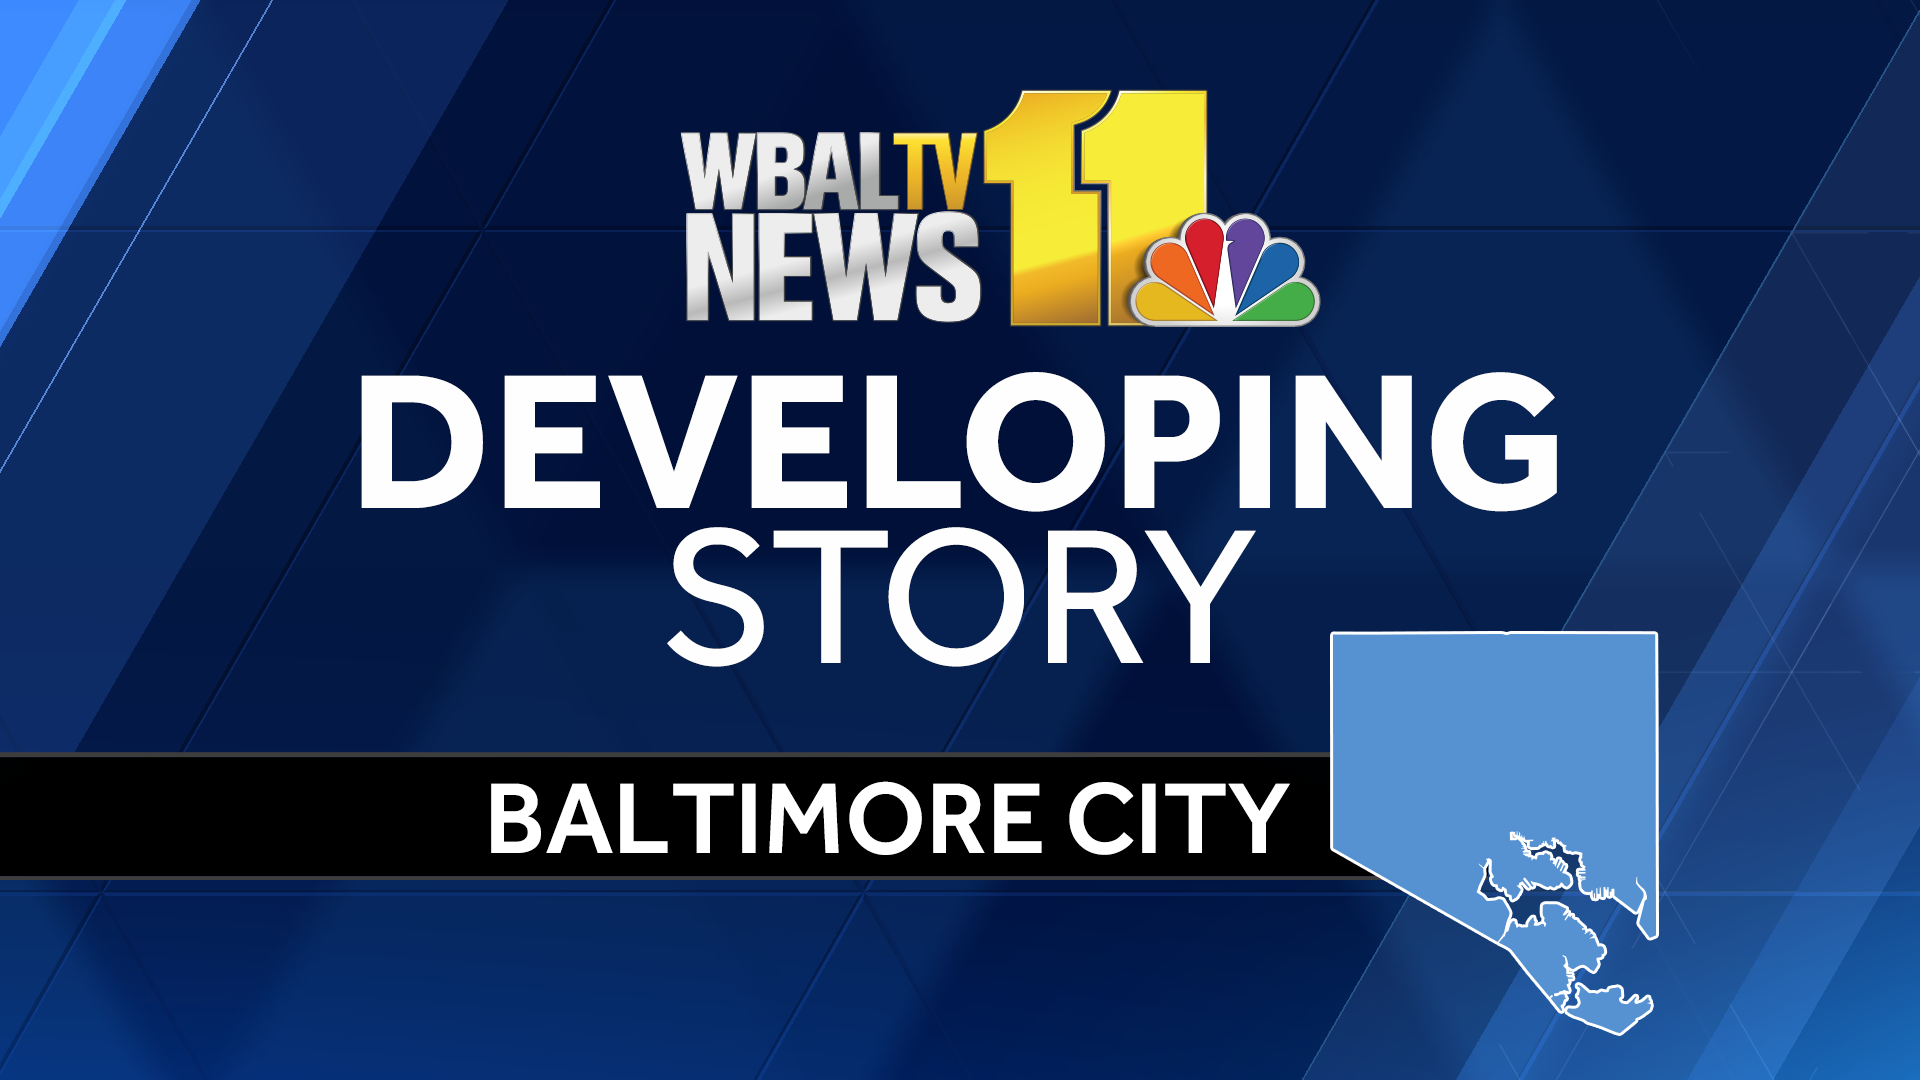 Developing Story Baltimore City